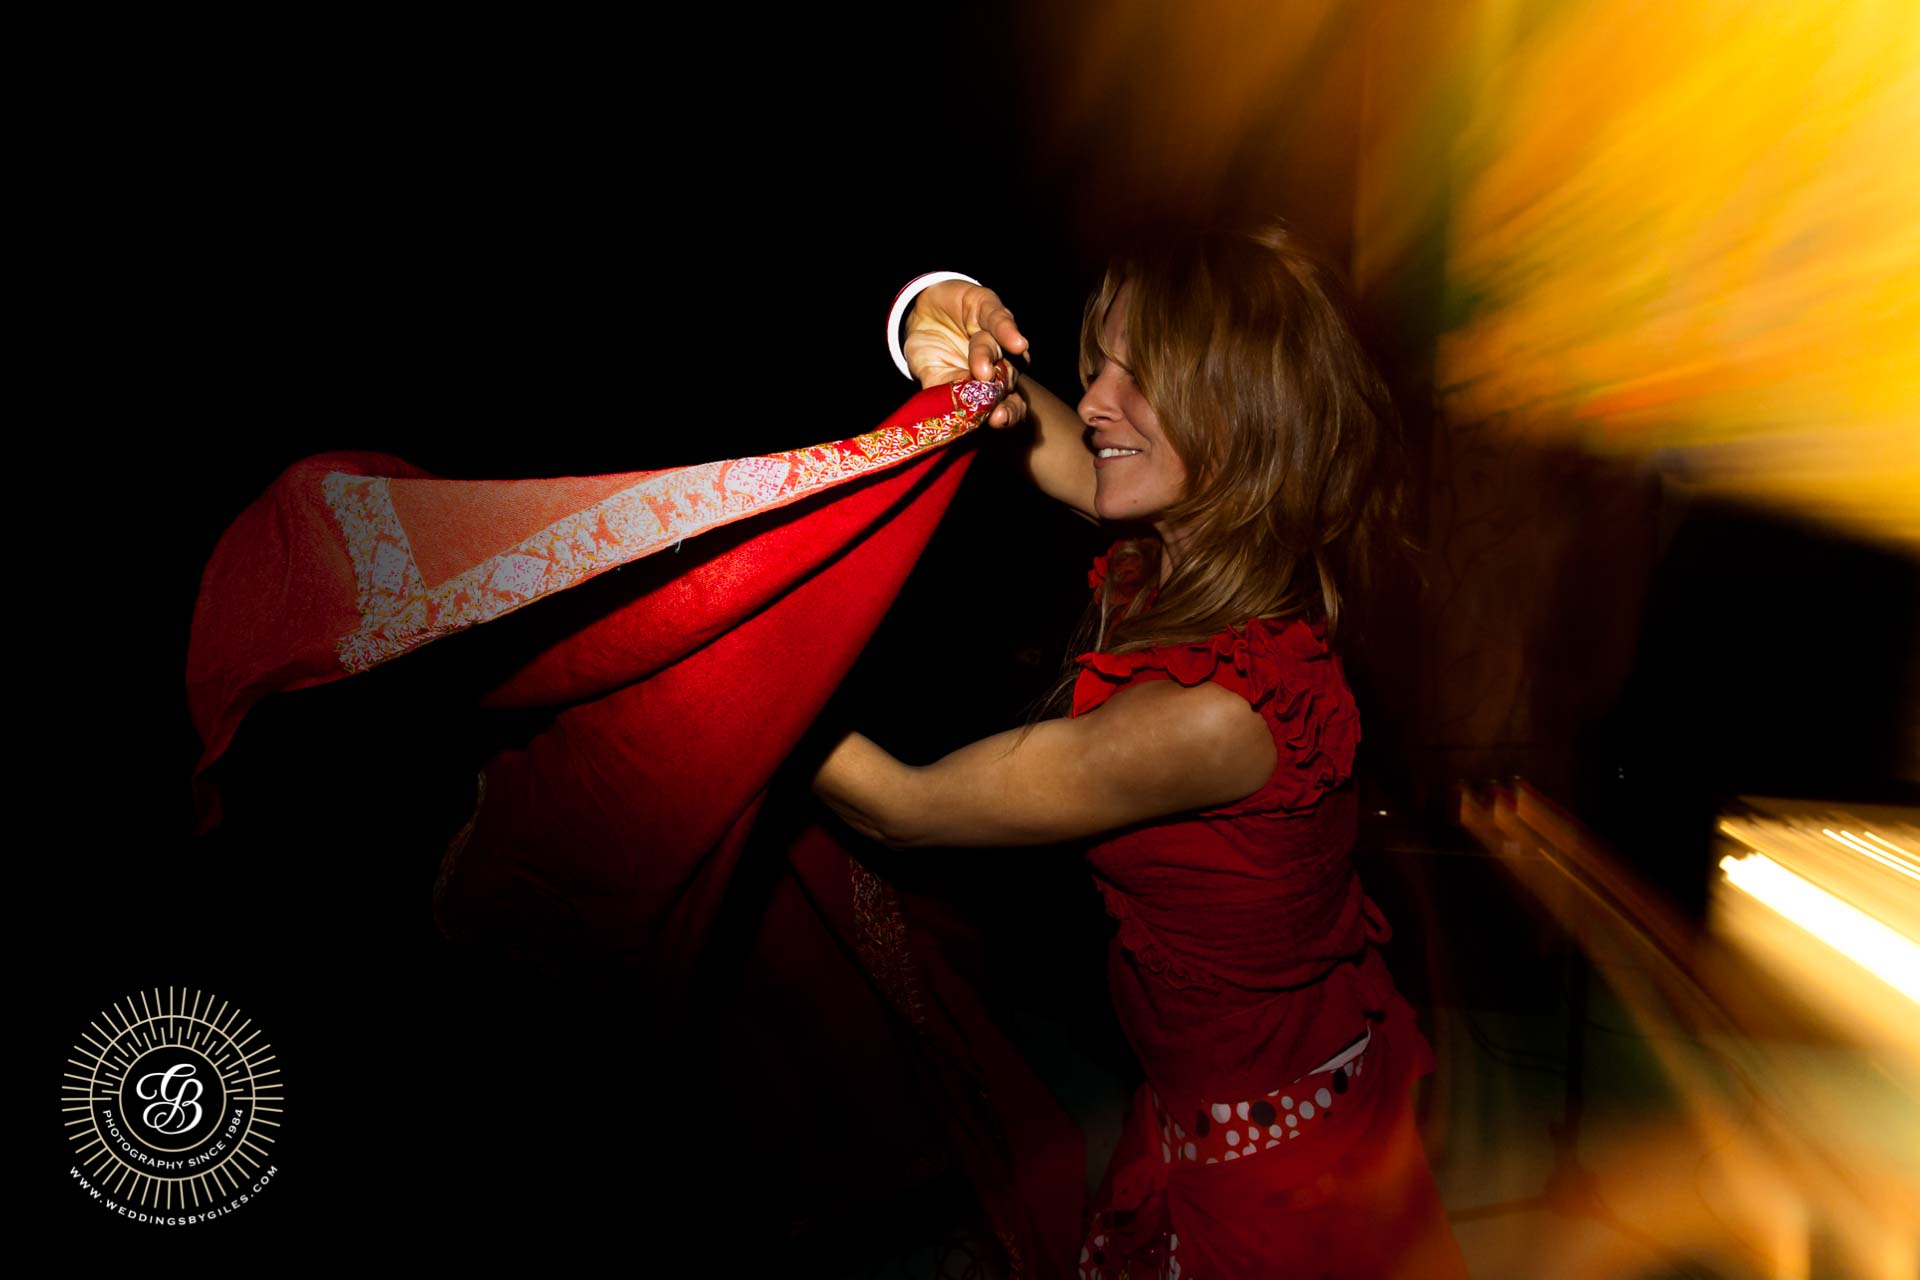 swirling cape Andalucian style